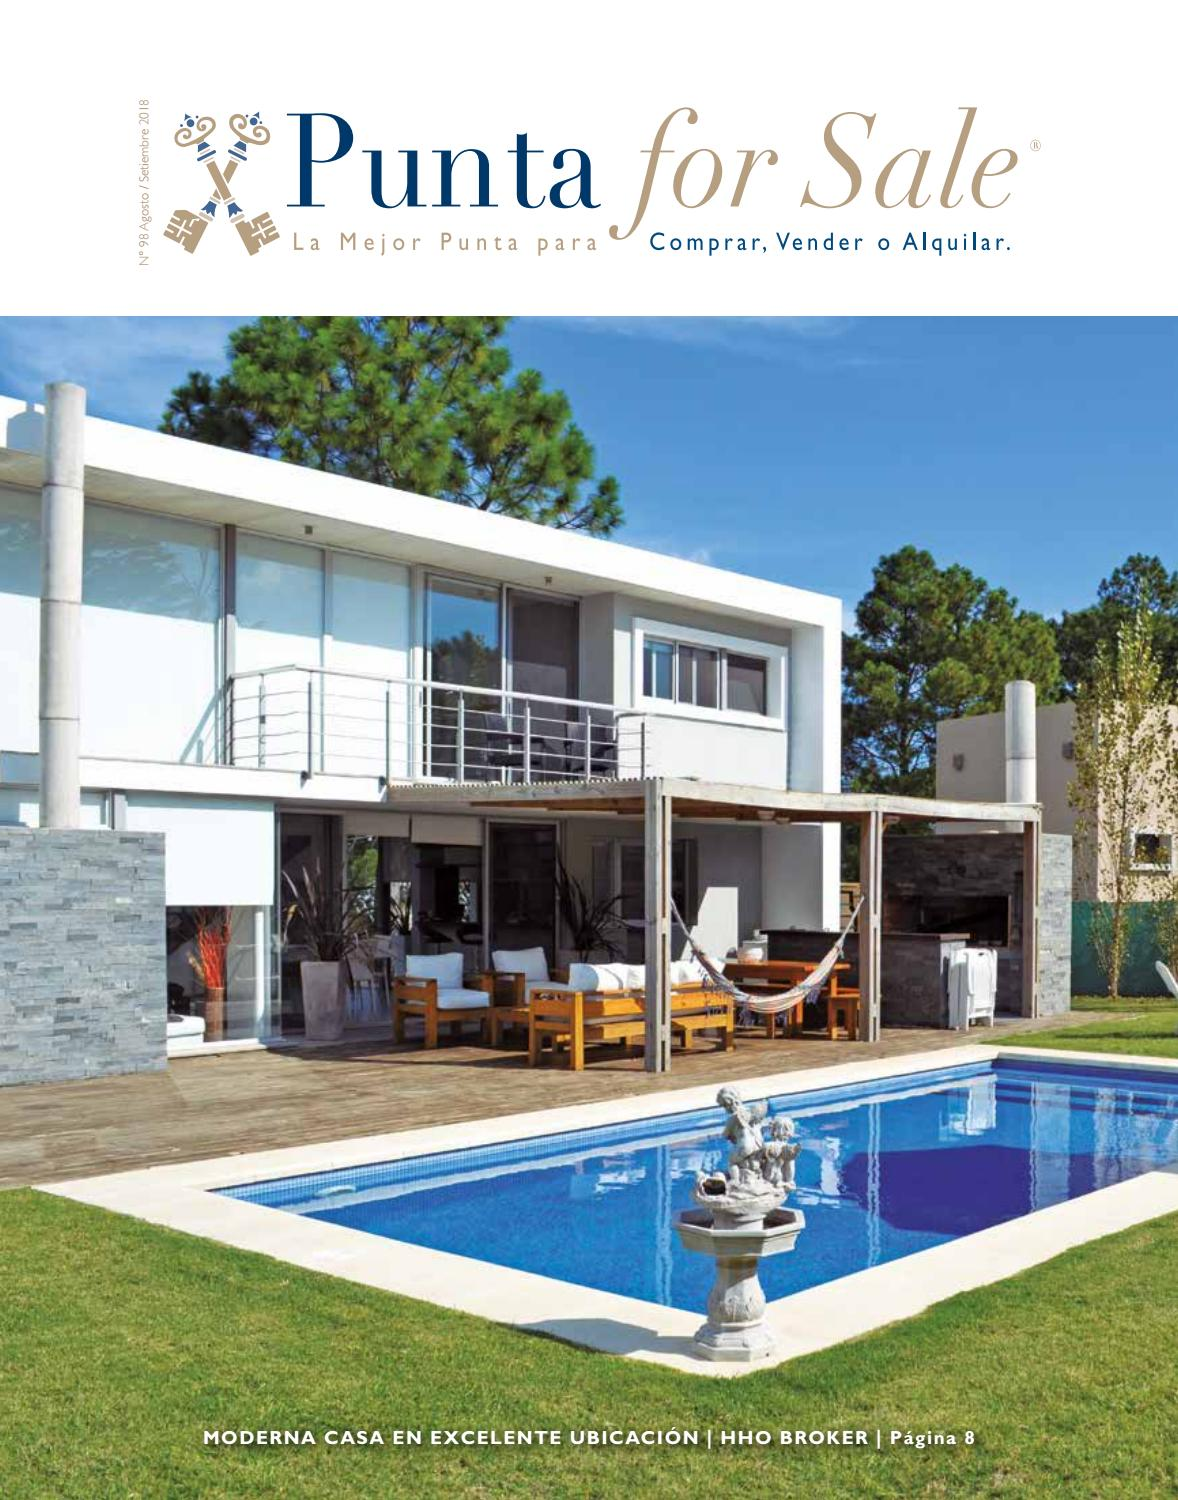 Revista de Real Estate Punta For Sale, edición # 98 Agosto - Setiembre 2018